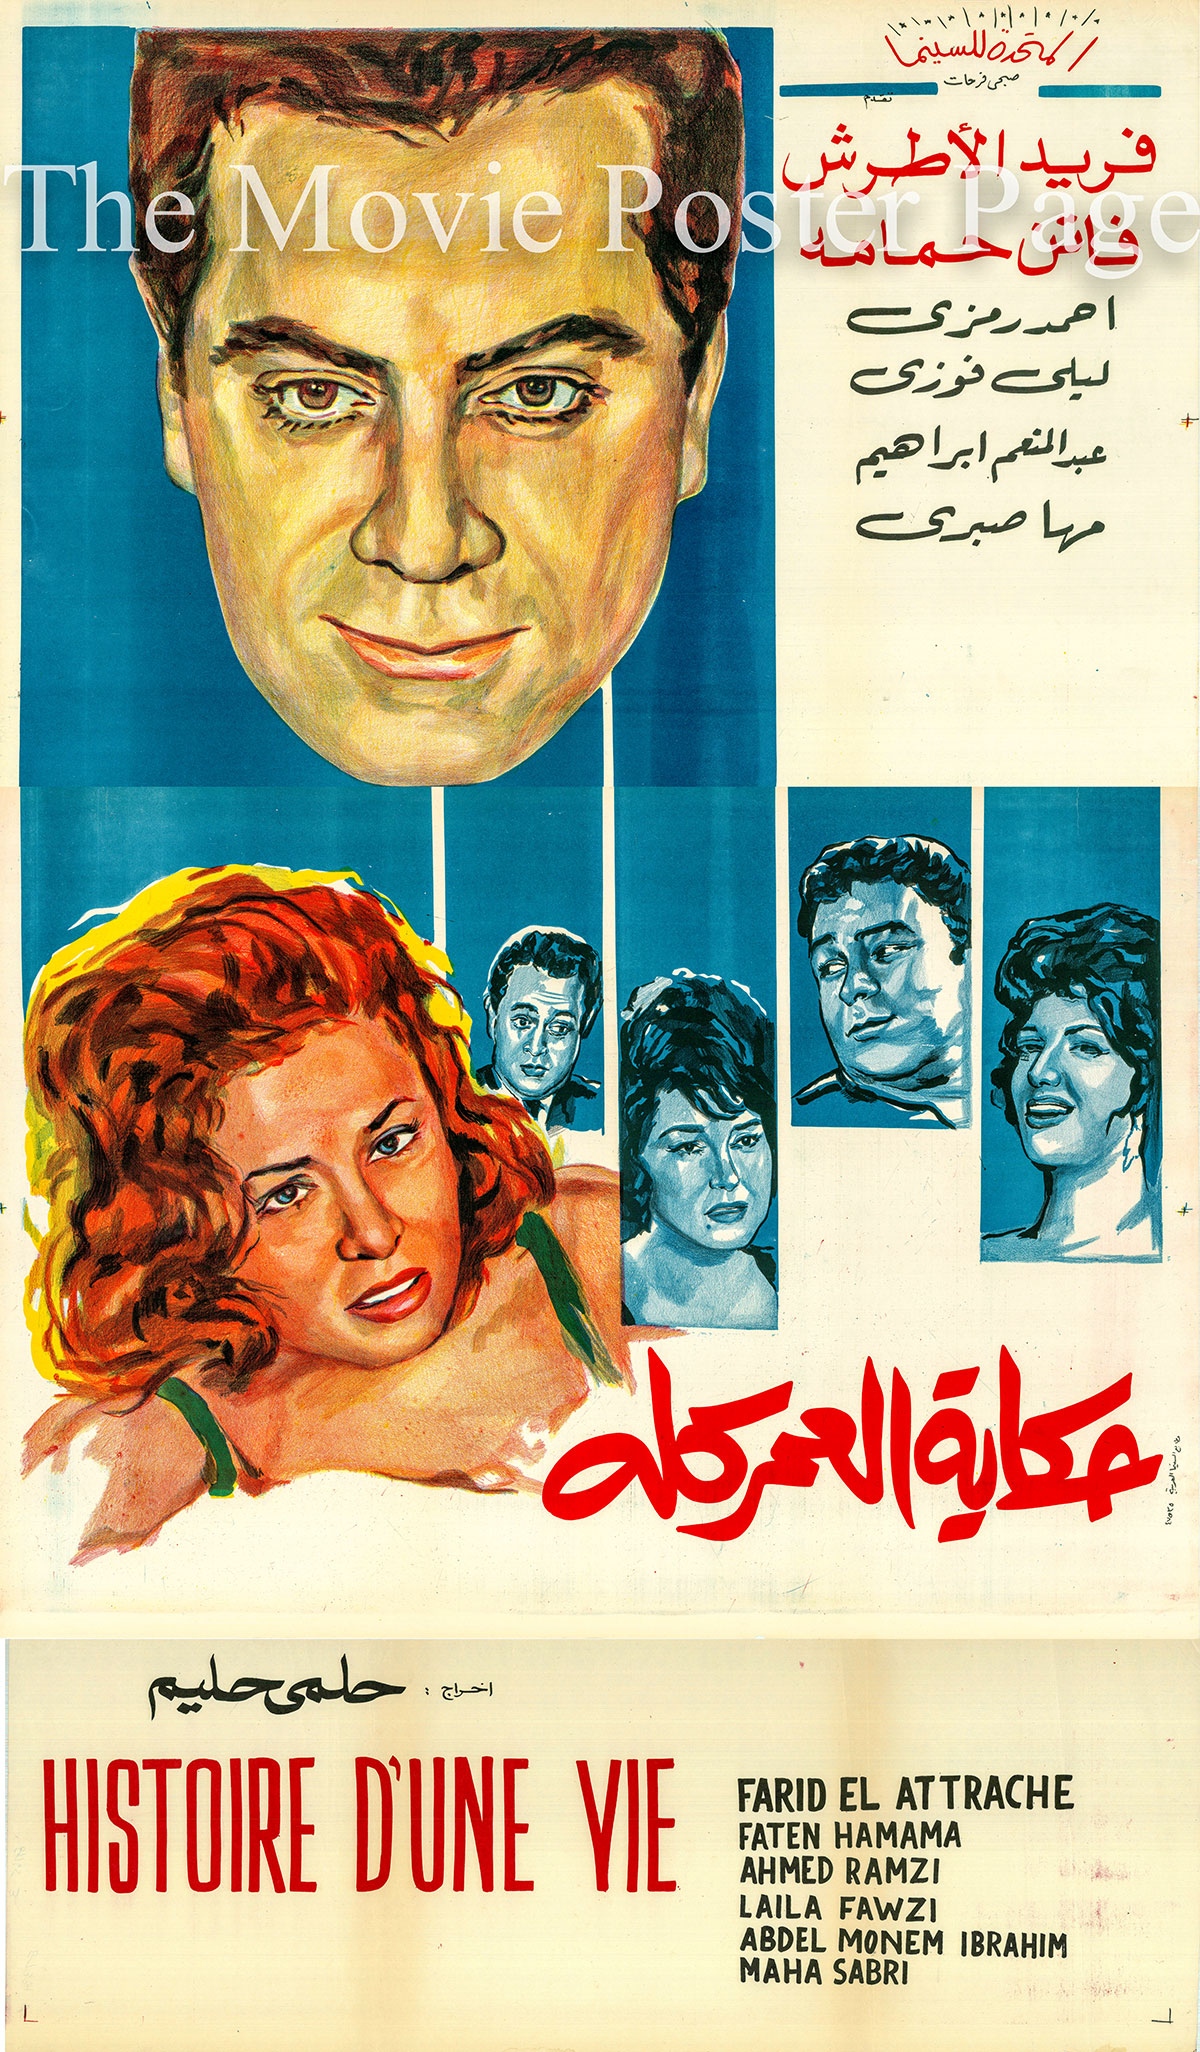 Pictured is a three-piece Egyptian promotional poster for the 1965 Helmy Halim film Entire Life Story starring Farid Al Atrache and Faten Hamama.